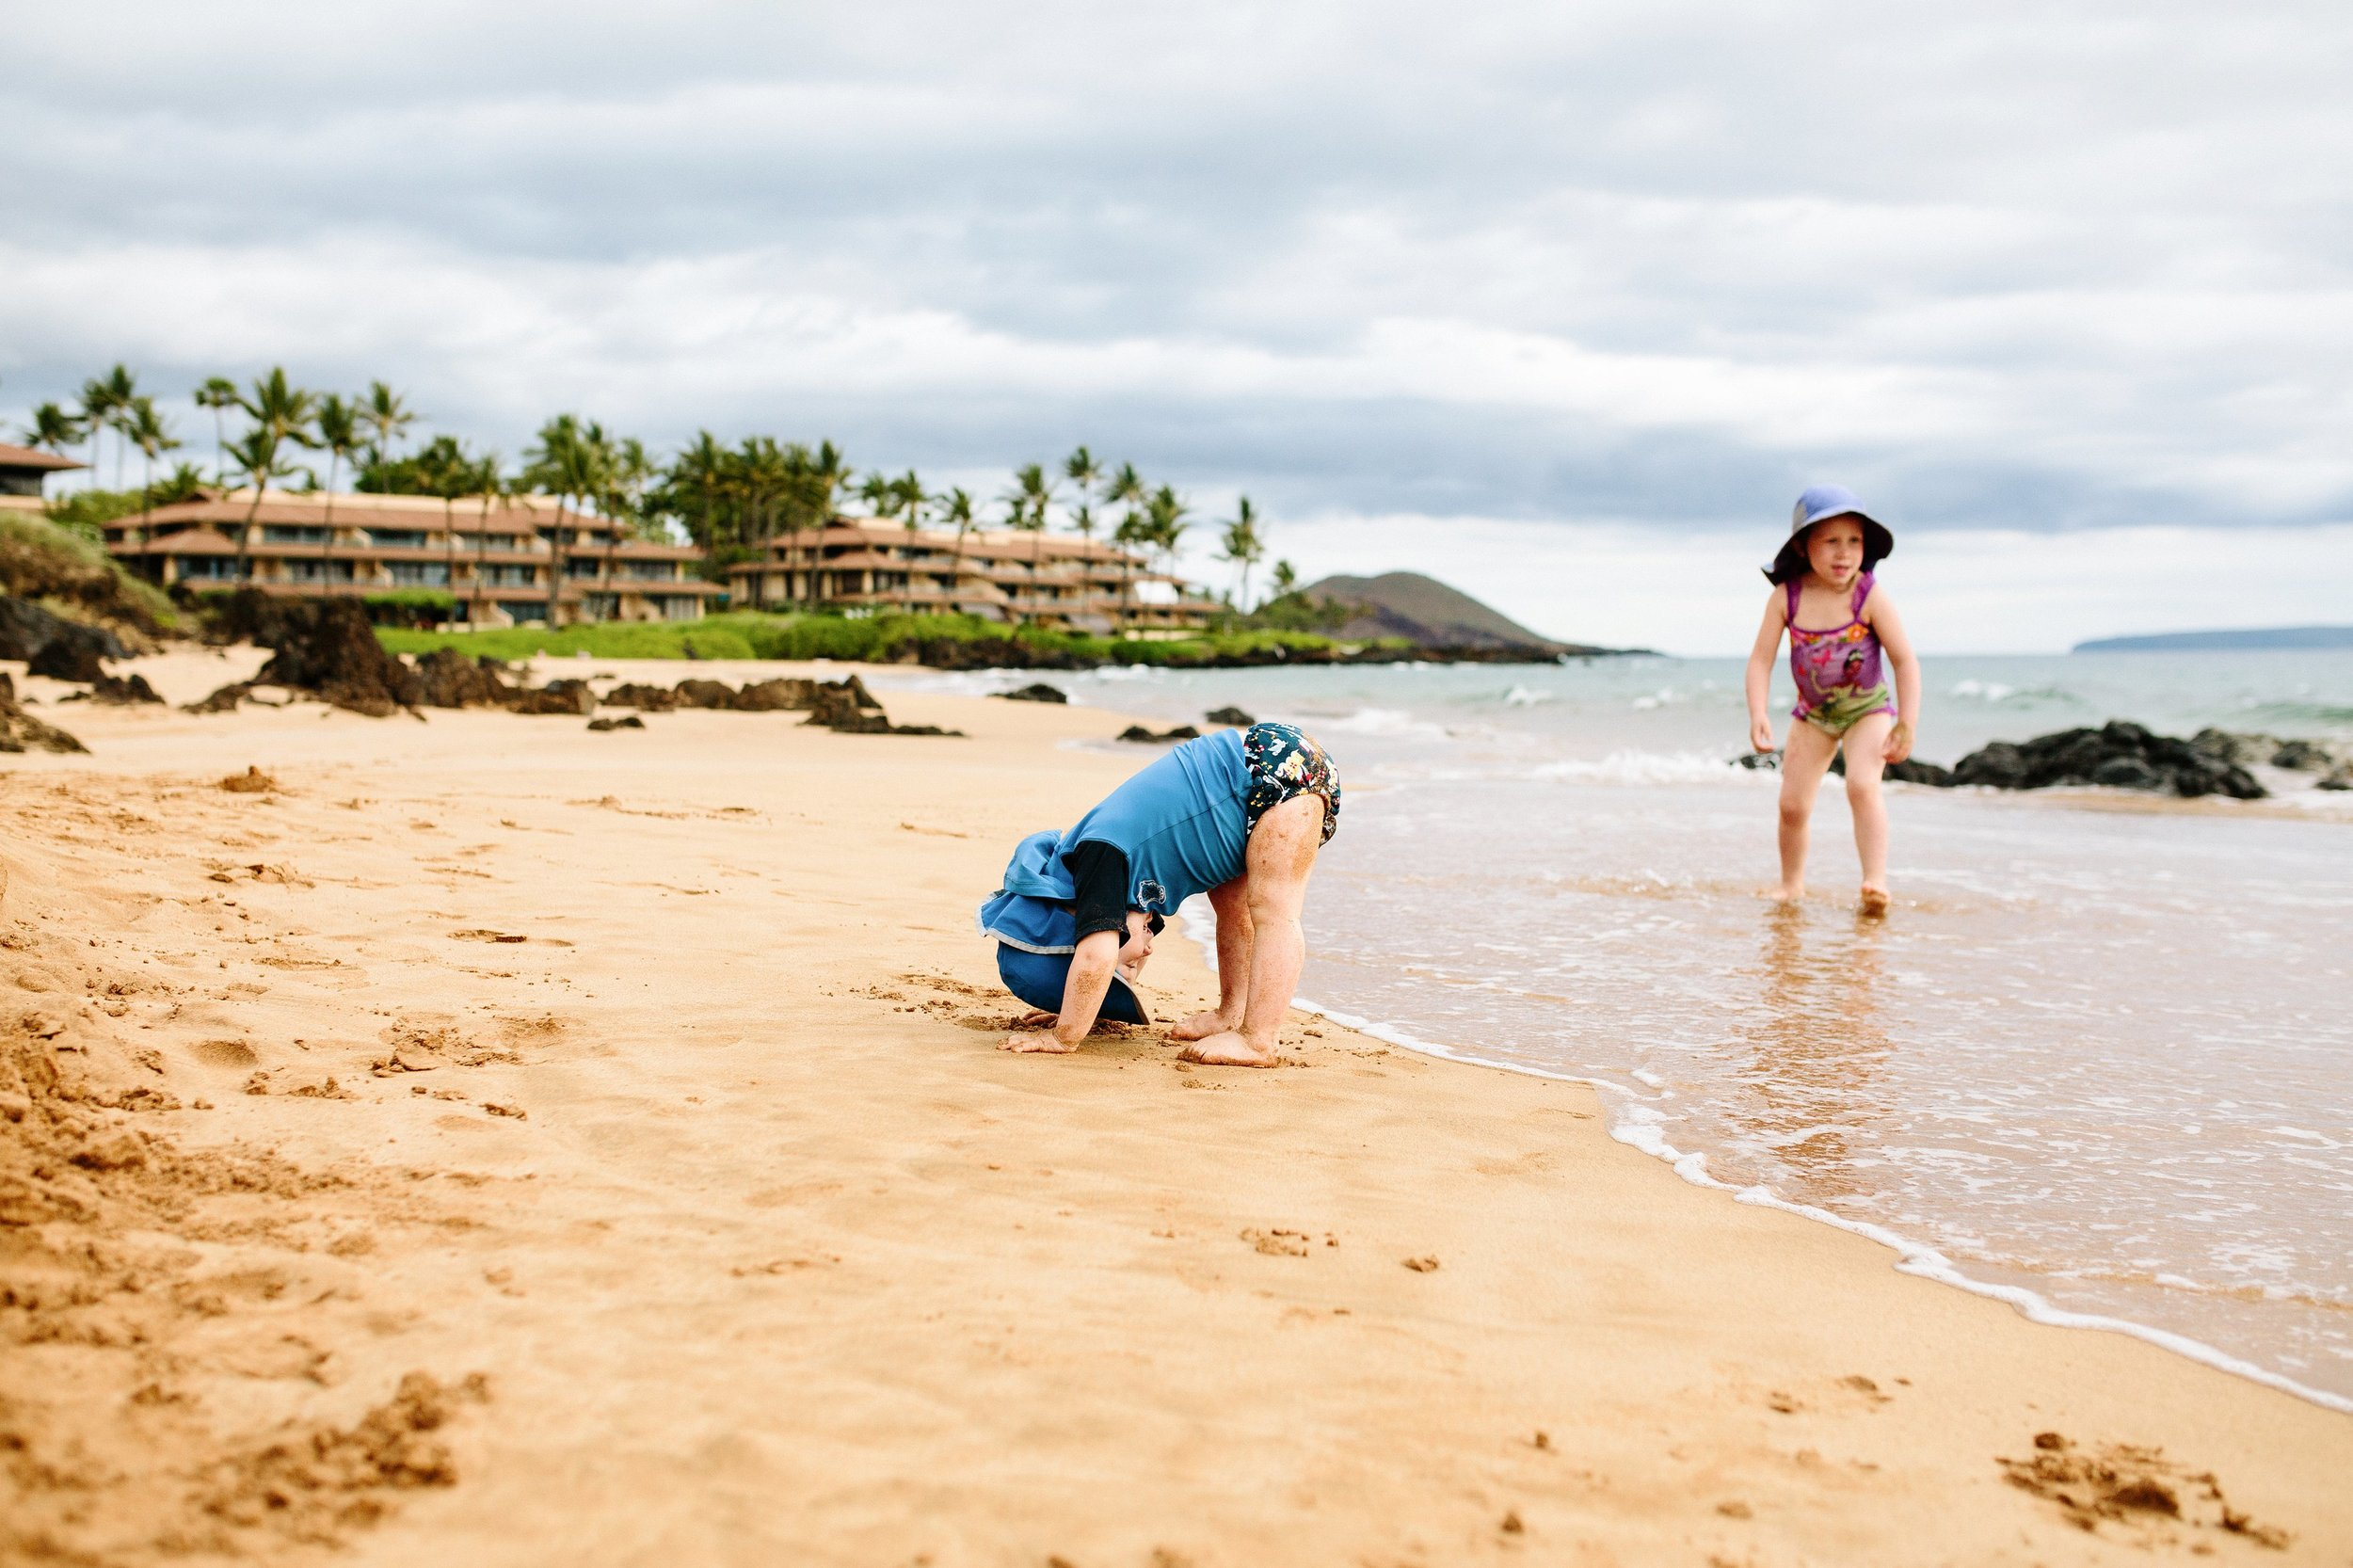 Family Beach Day Photo Session on Maui by Seattle Lifestyle Photographer Janelle Elaine Photography.jpg